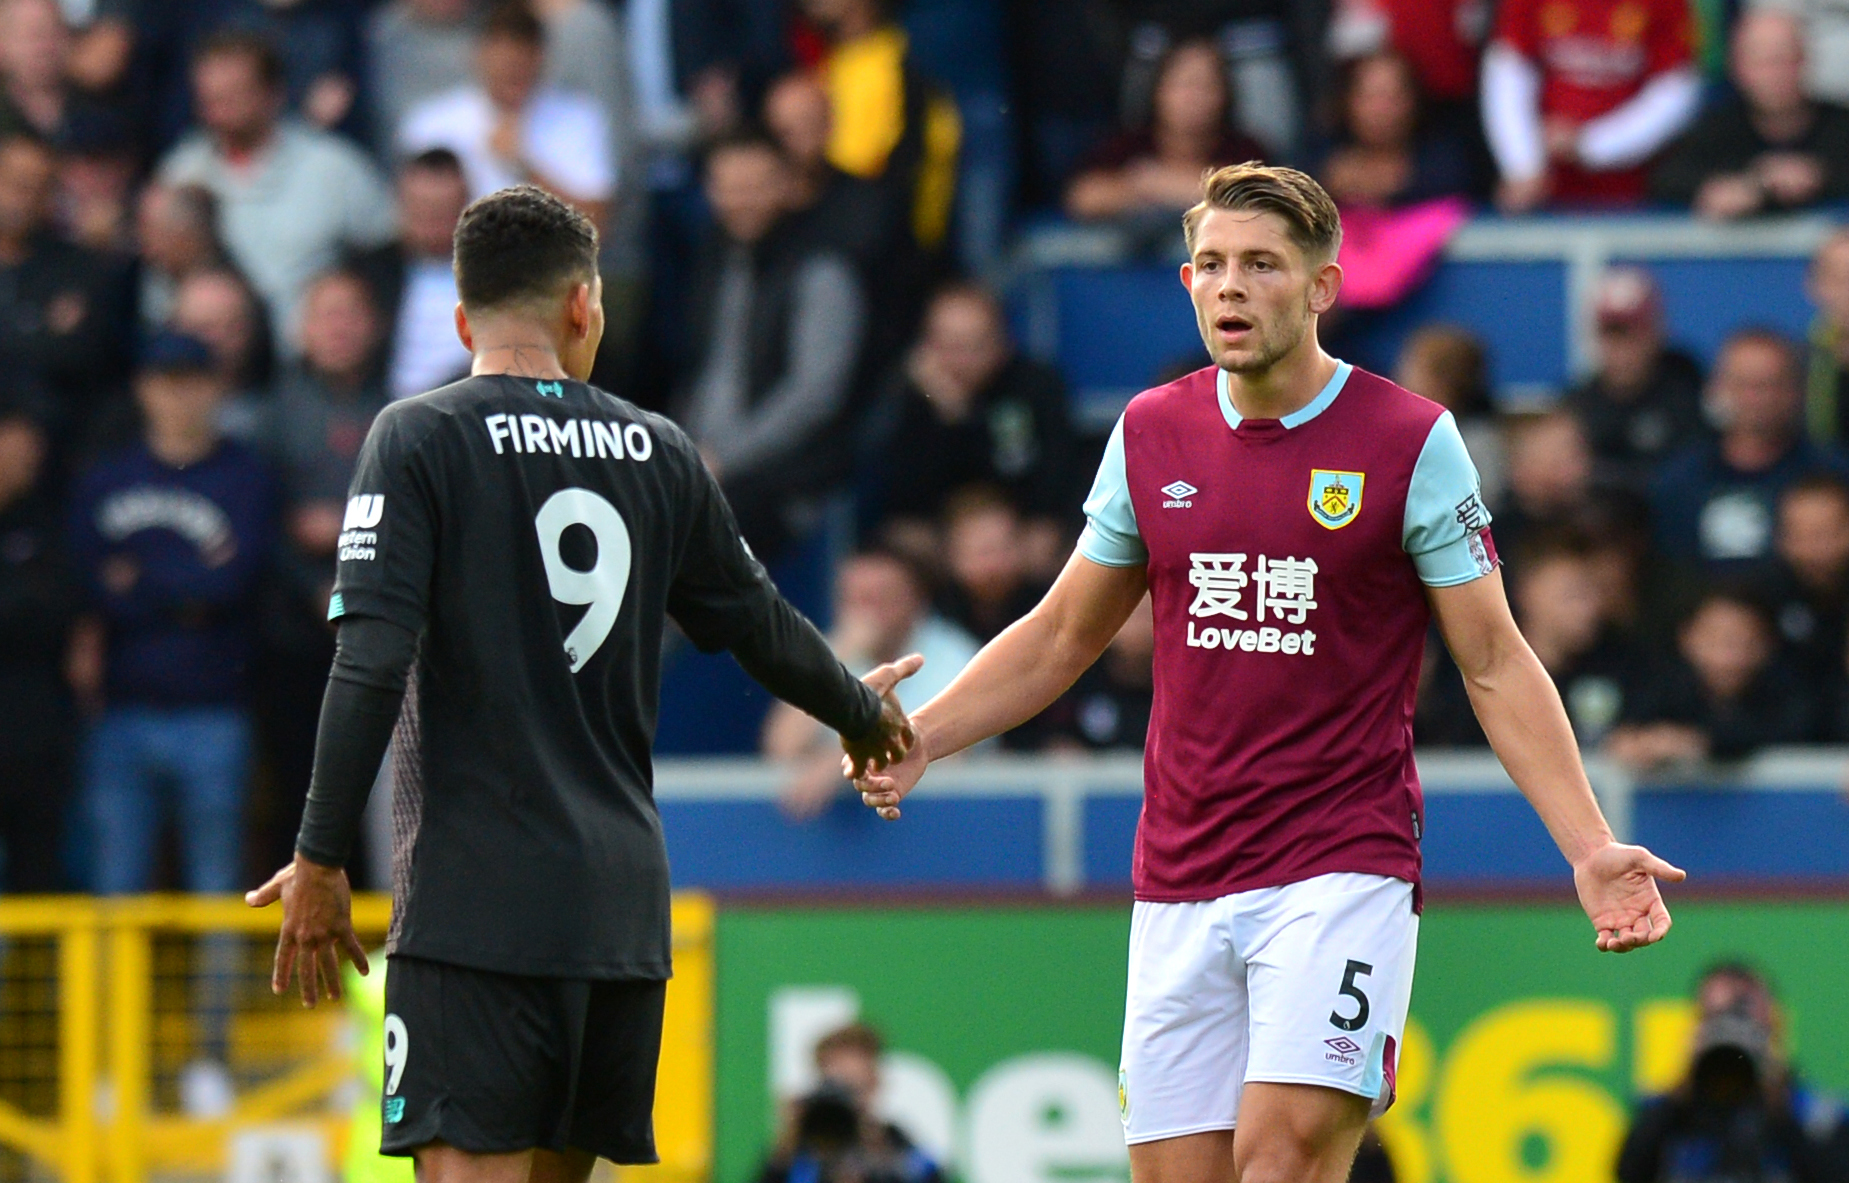 Natalie Bromley: Winnable games now on horizon for Burnley